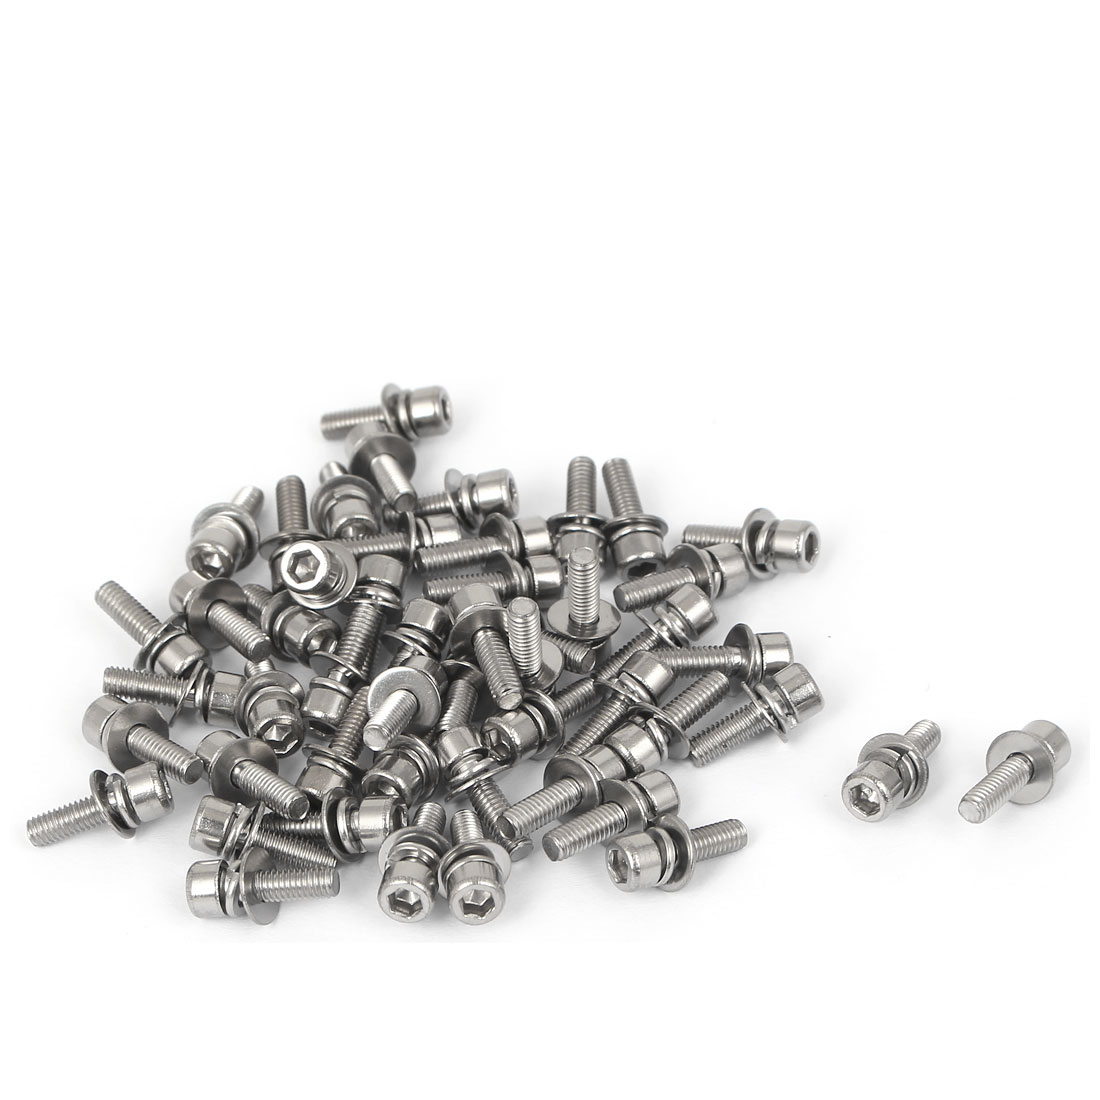 13mm Length M3 x 10mm Thread Hex Socket Head Cap Screw w Washer 50 Pcs